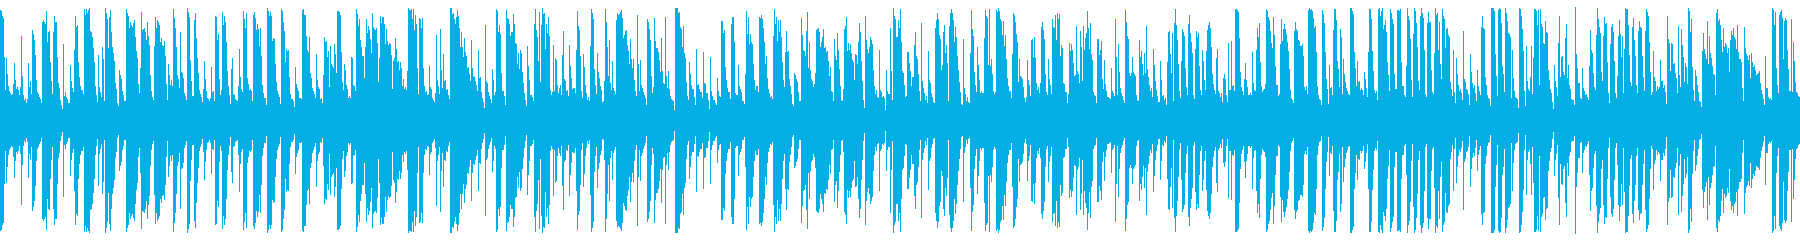 Energetic and fast jazz piano BGM (loop)'s reproduced waveform